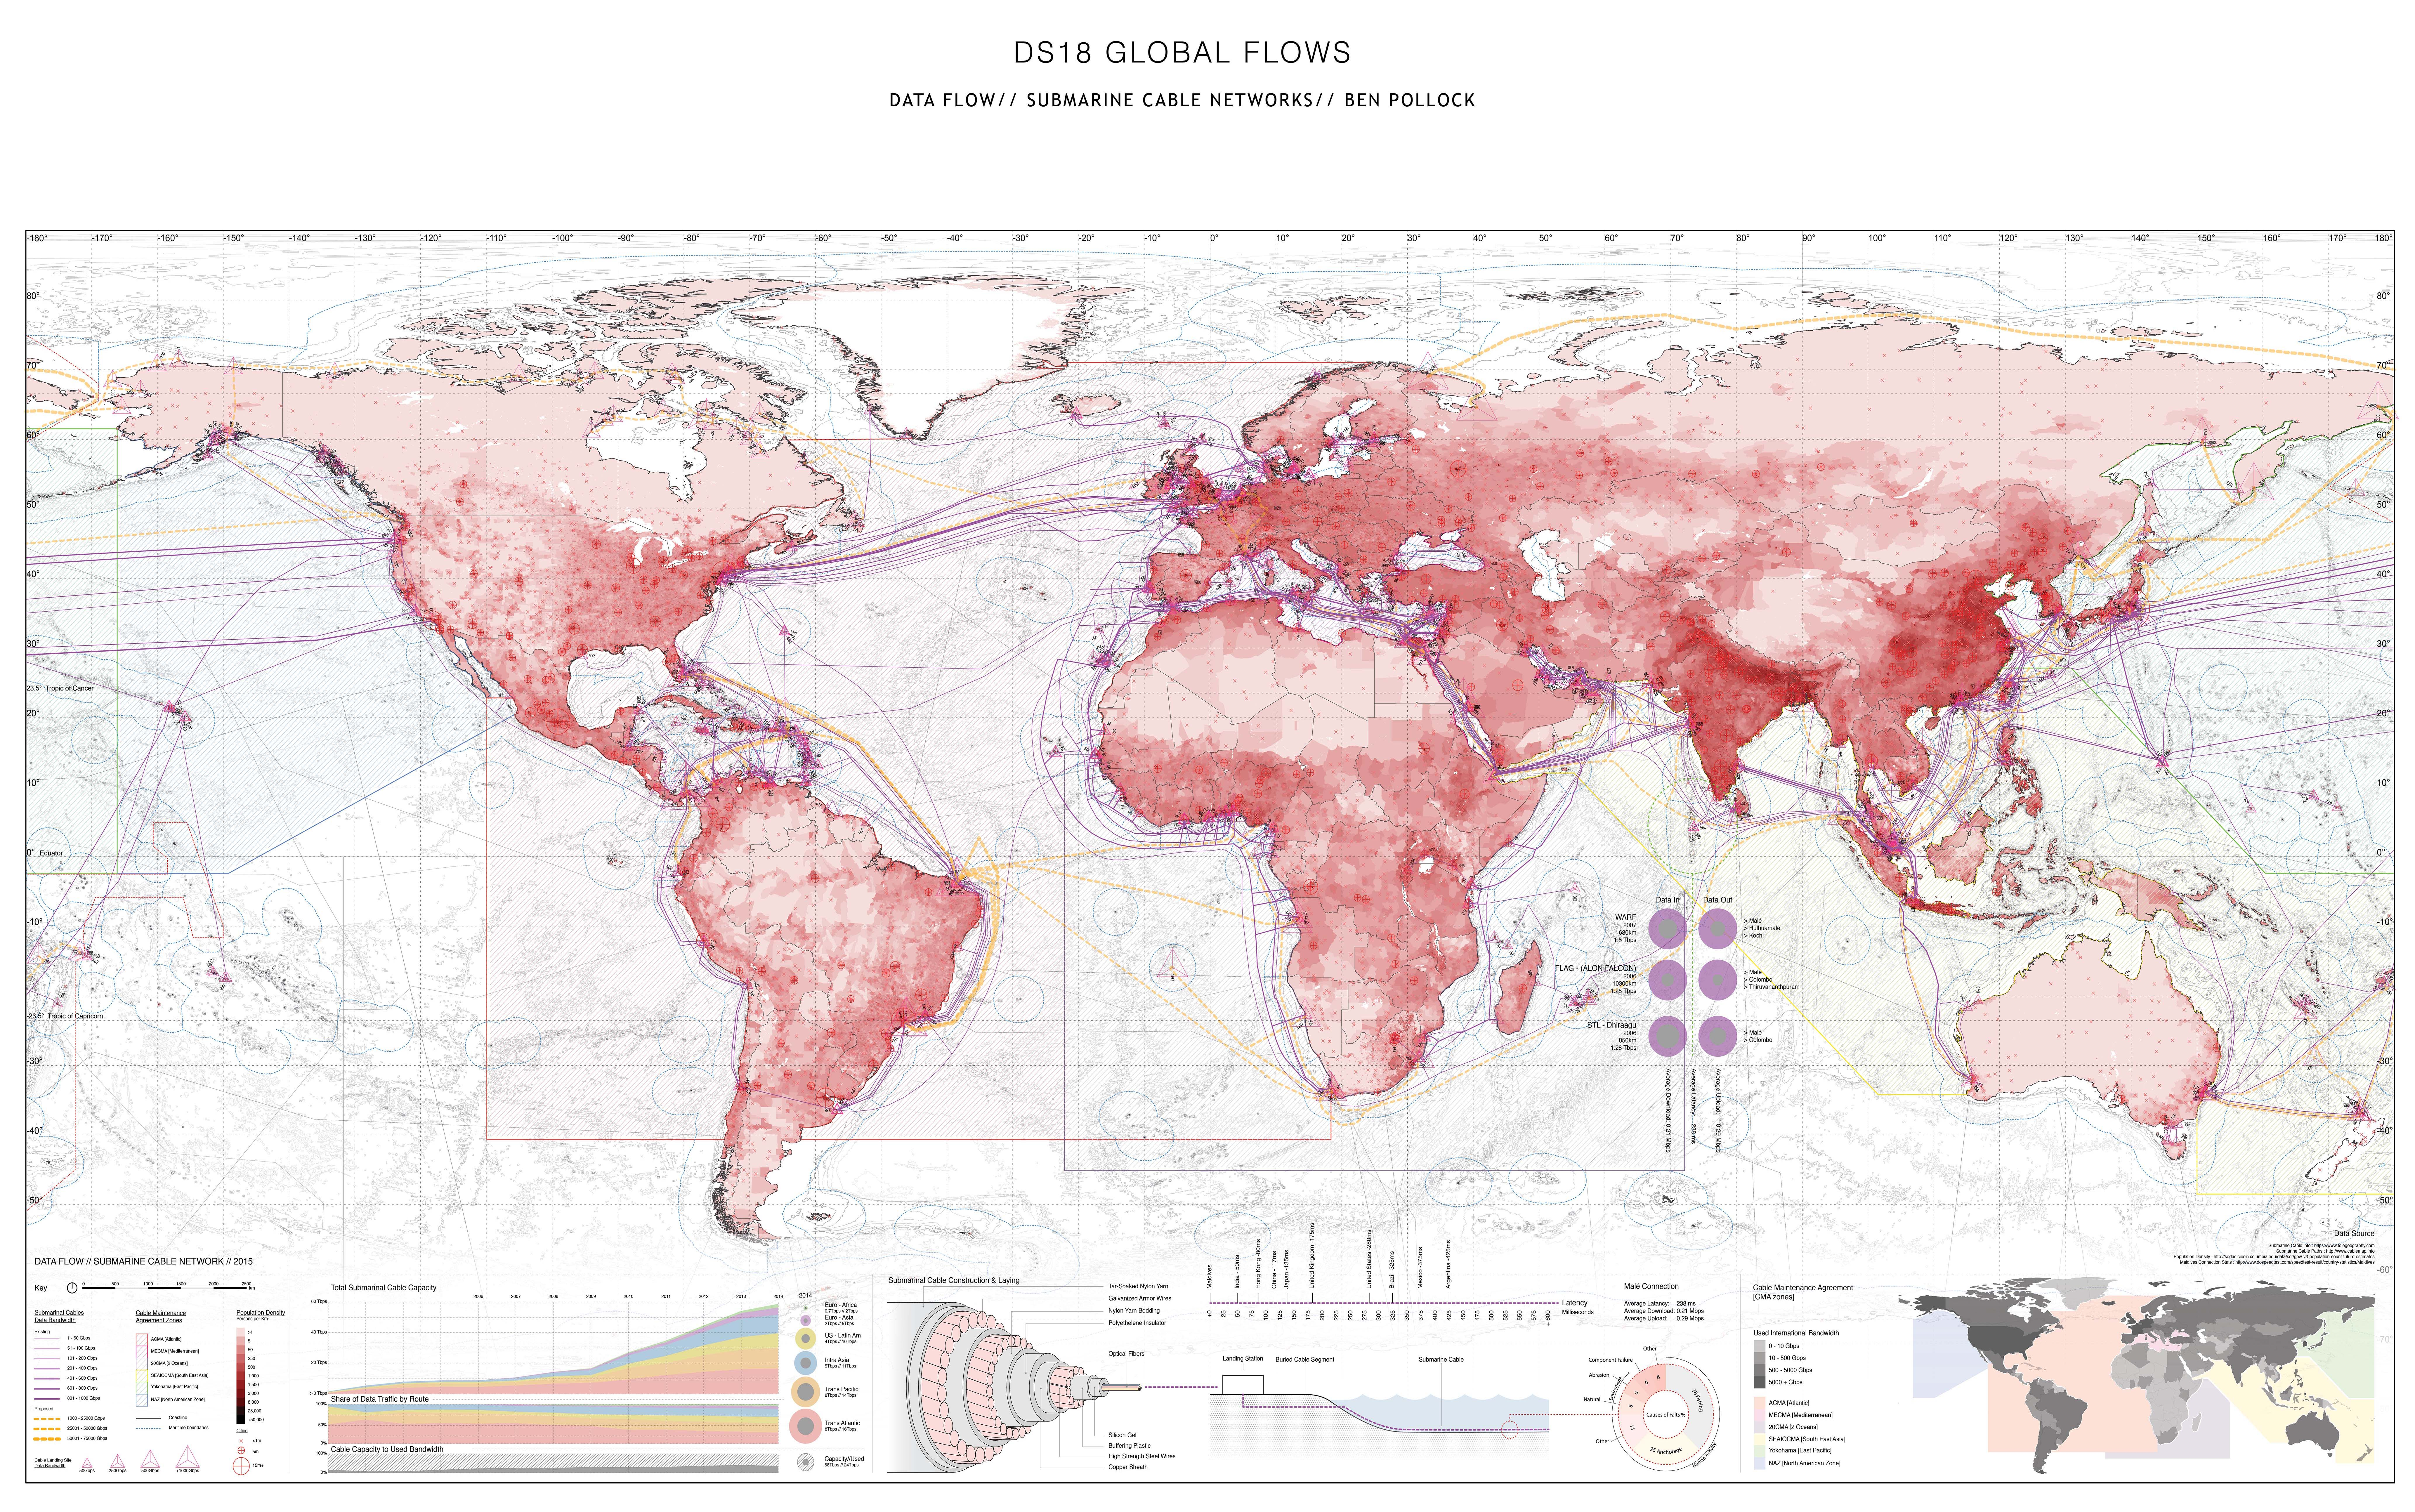 SUBMARINE CABLE DIEULOIS